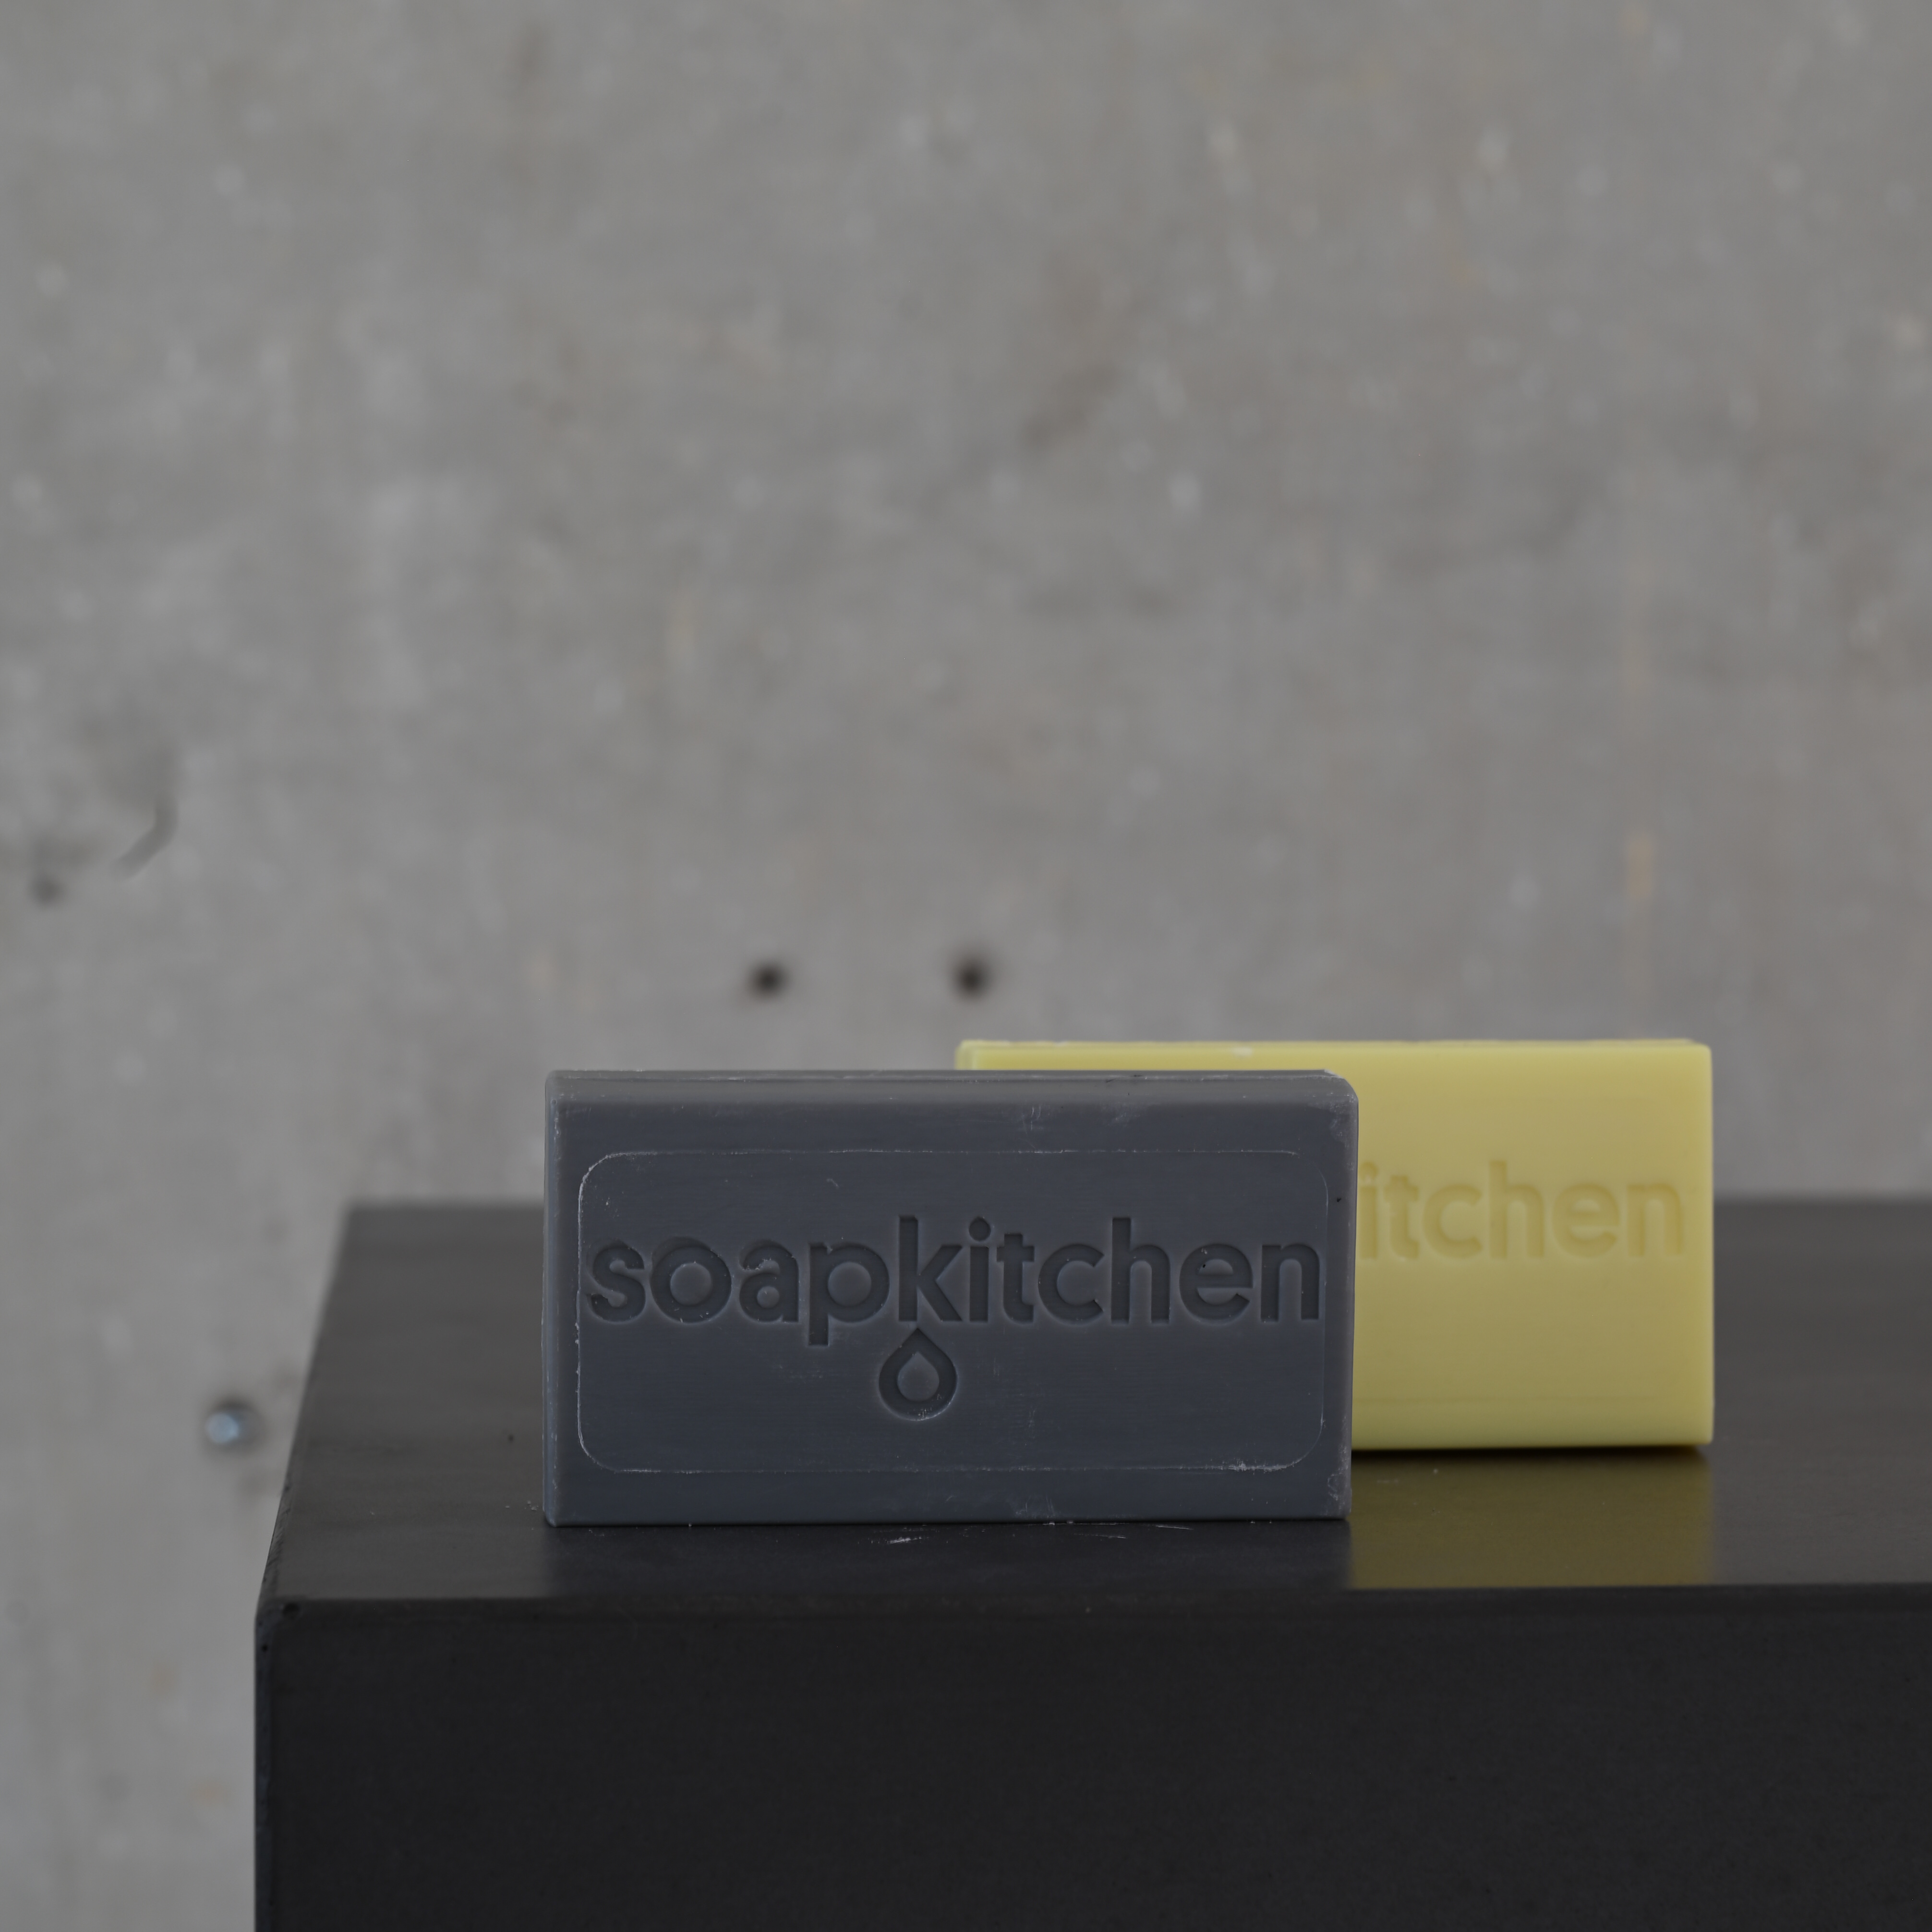 Soapkitchen Special SOAP BAR #1 & #2